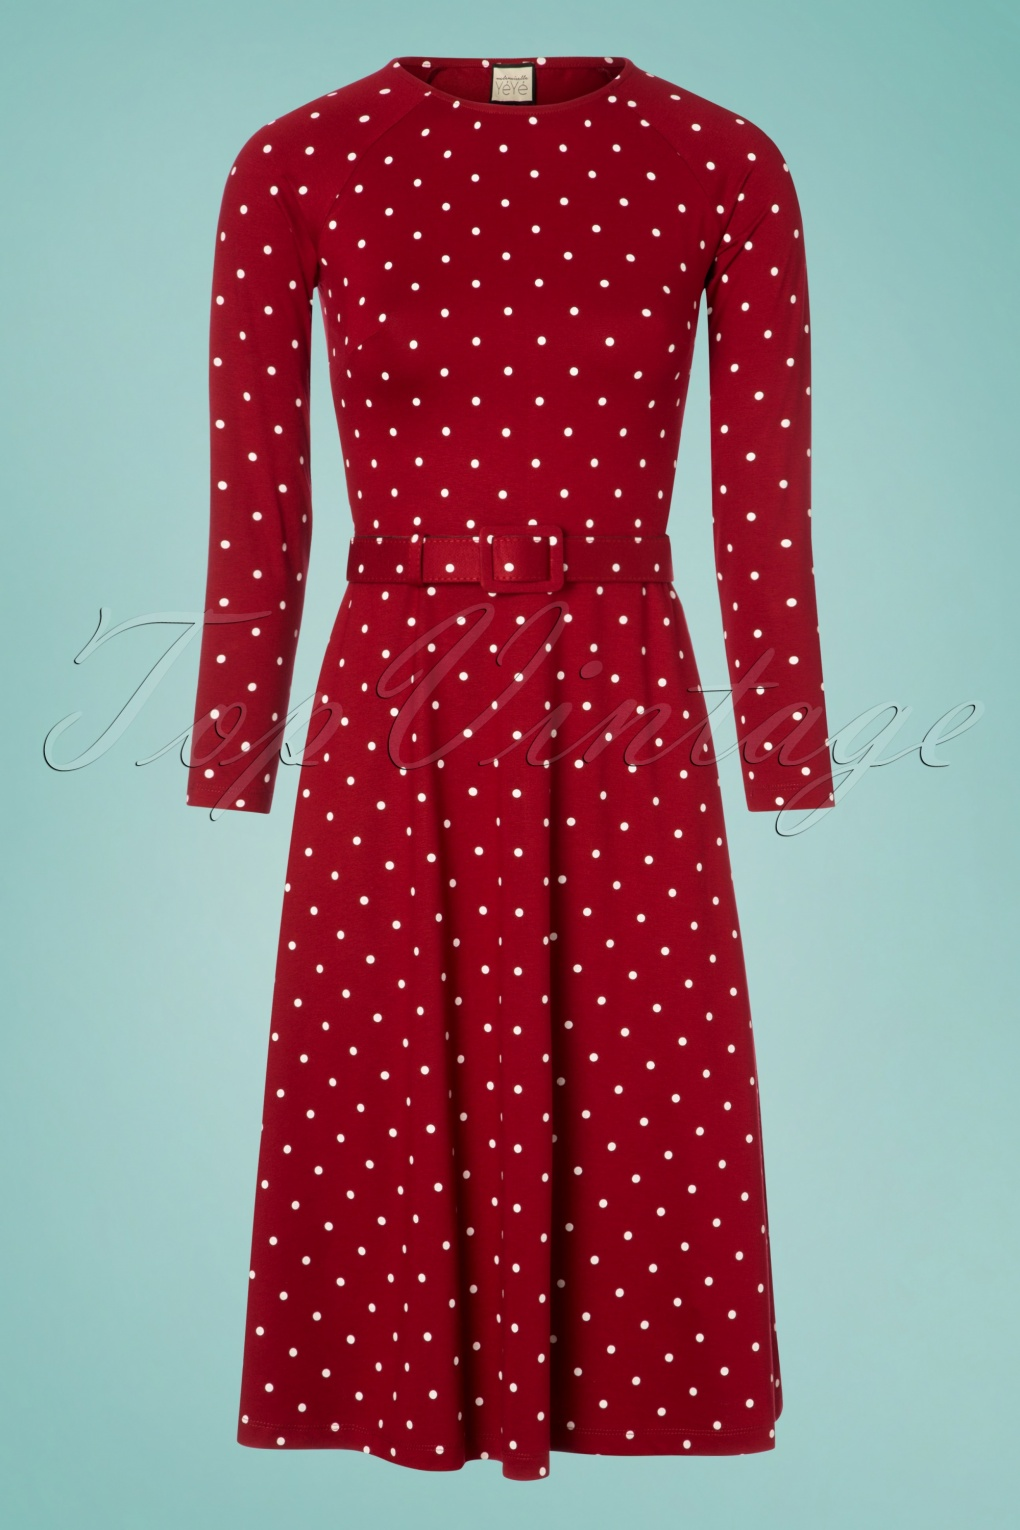 1960s Dresses | 60s Dresses Mod, Mini, Jakie O, Hippie 60s Let The Polkadots Dance Dress in Red £80.06 AT vintagedancer.com